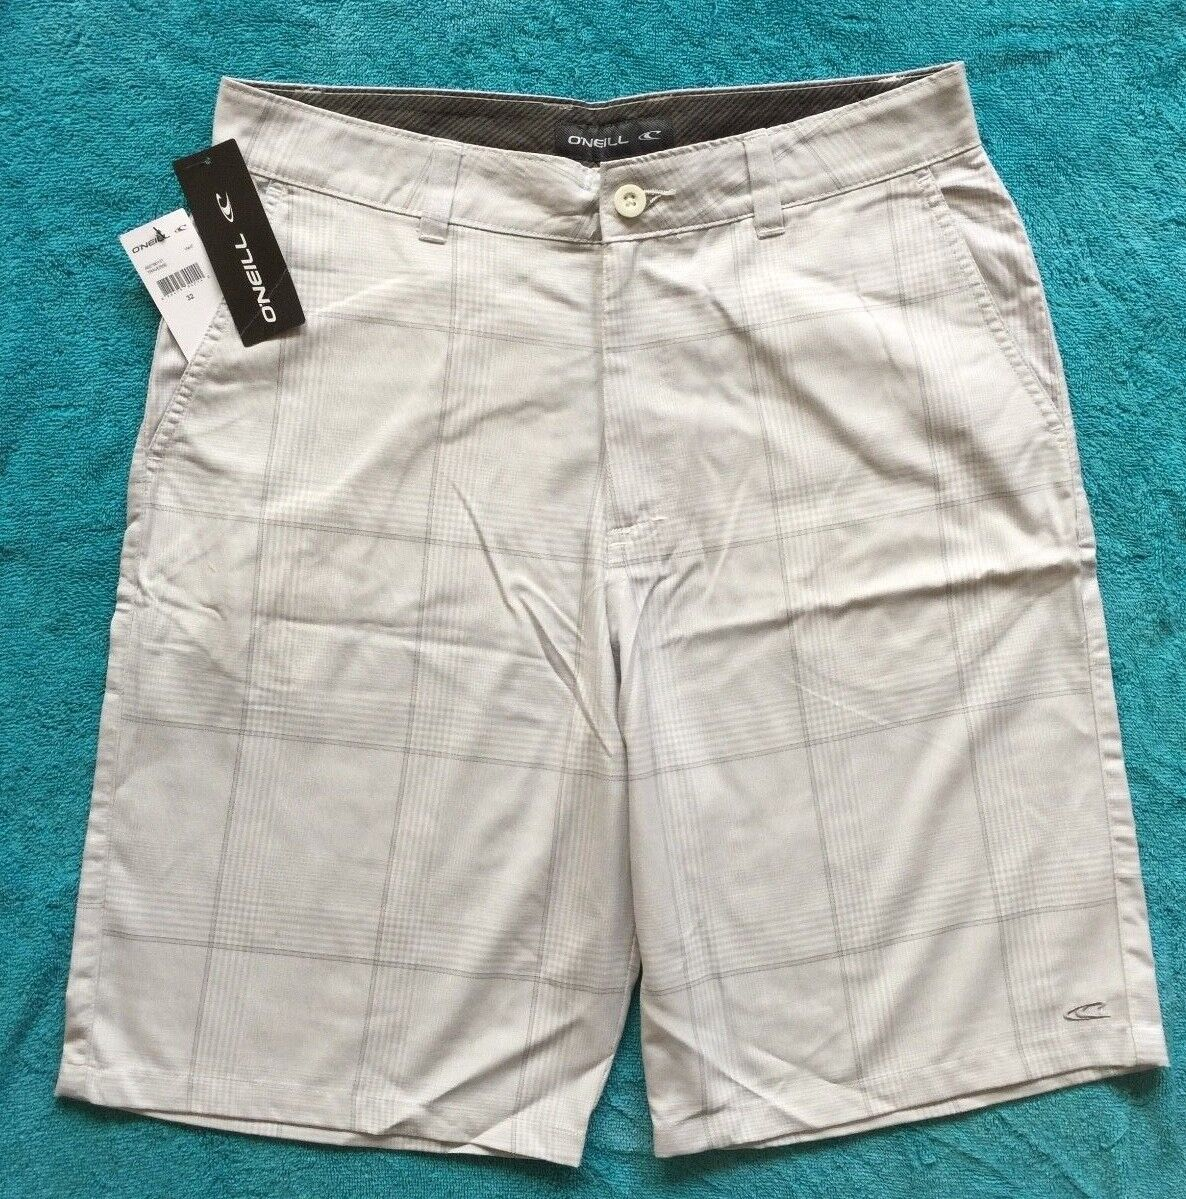 NEW Mens Size 36 O'Neill Flat Front Board Shorts White & Gra